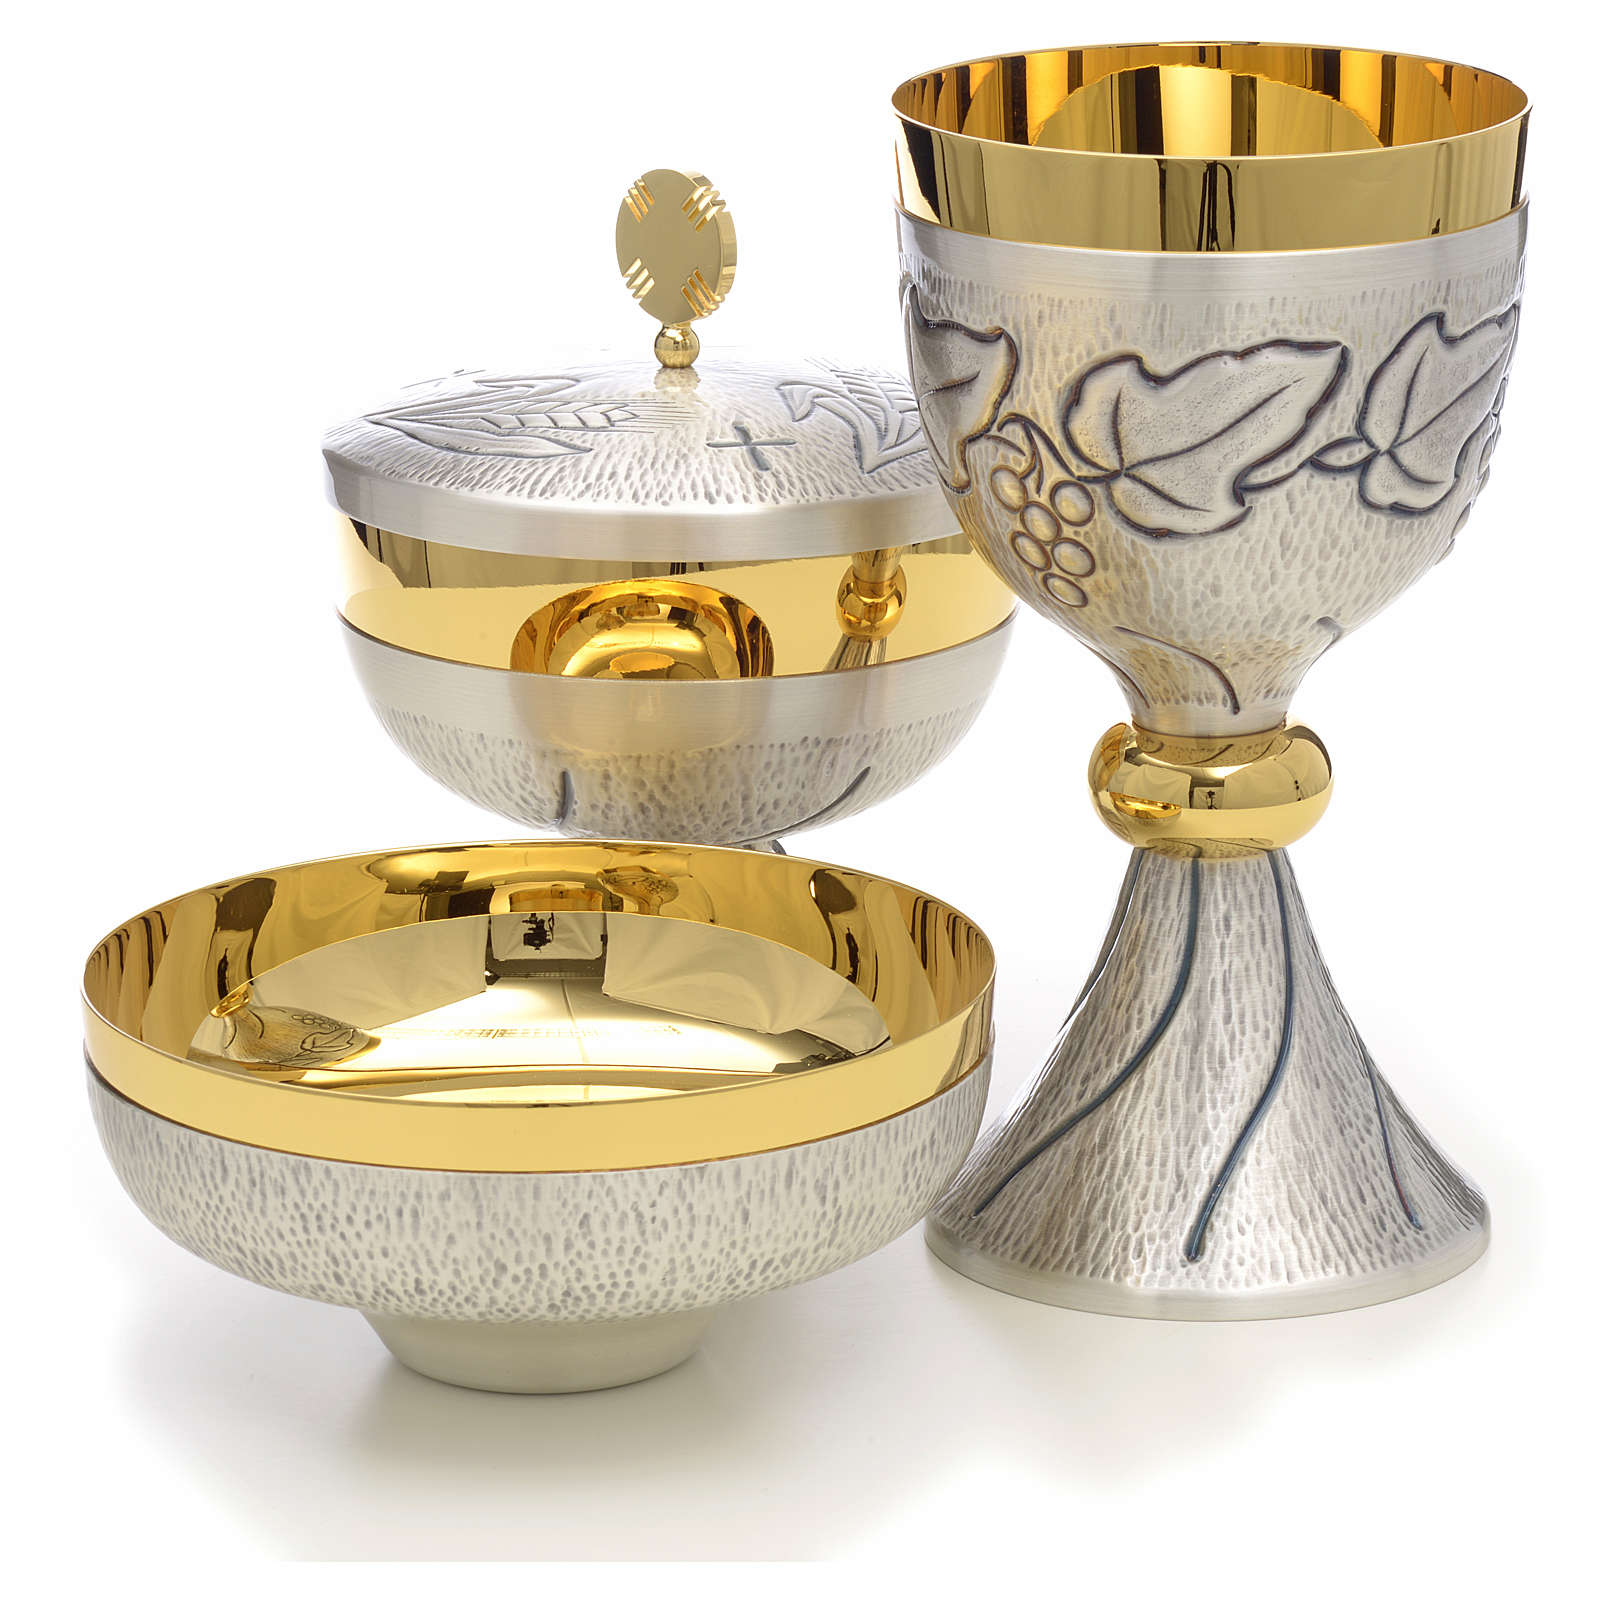 Chalice, ciborium and paten with grapes, ears of wheat and cross 4